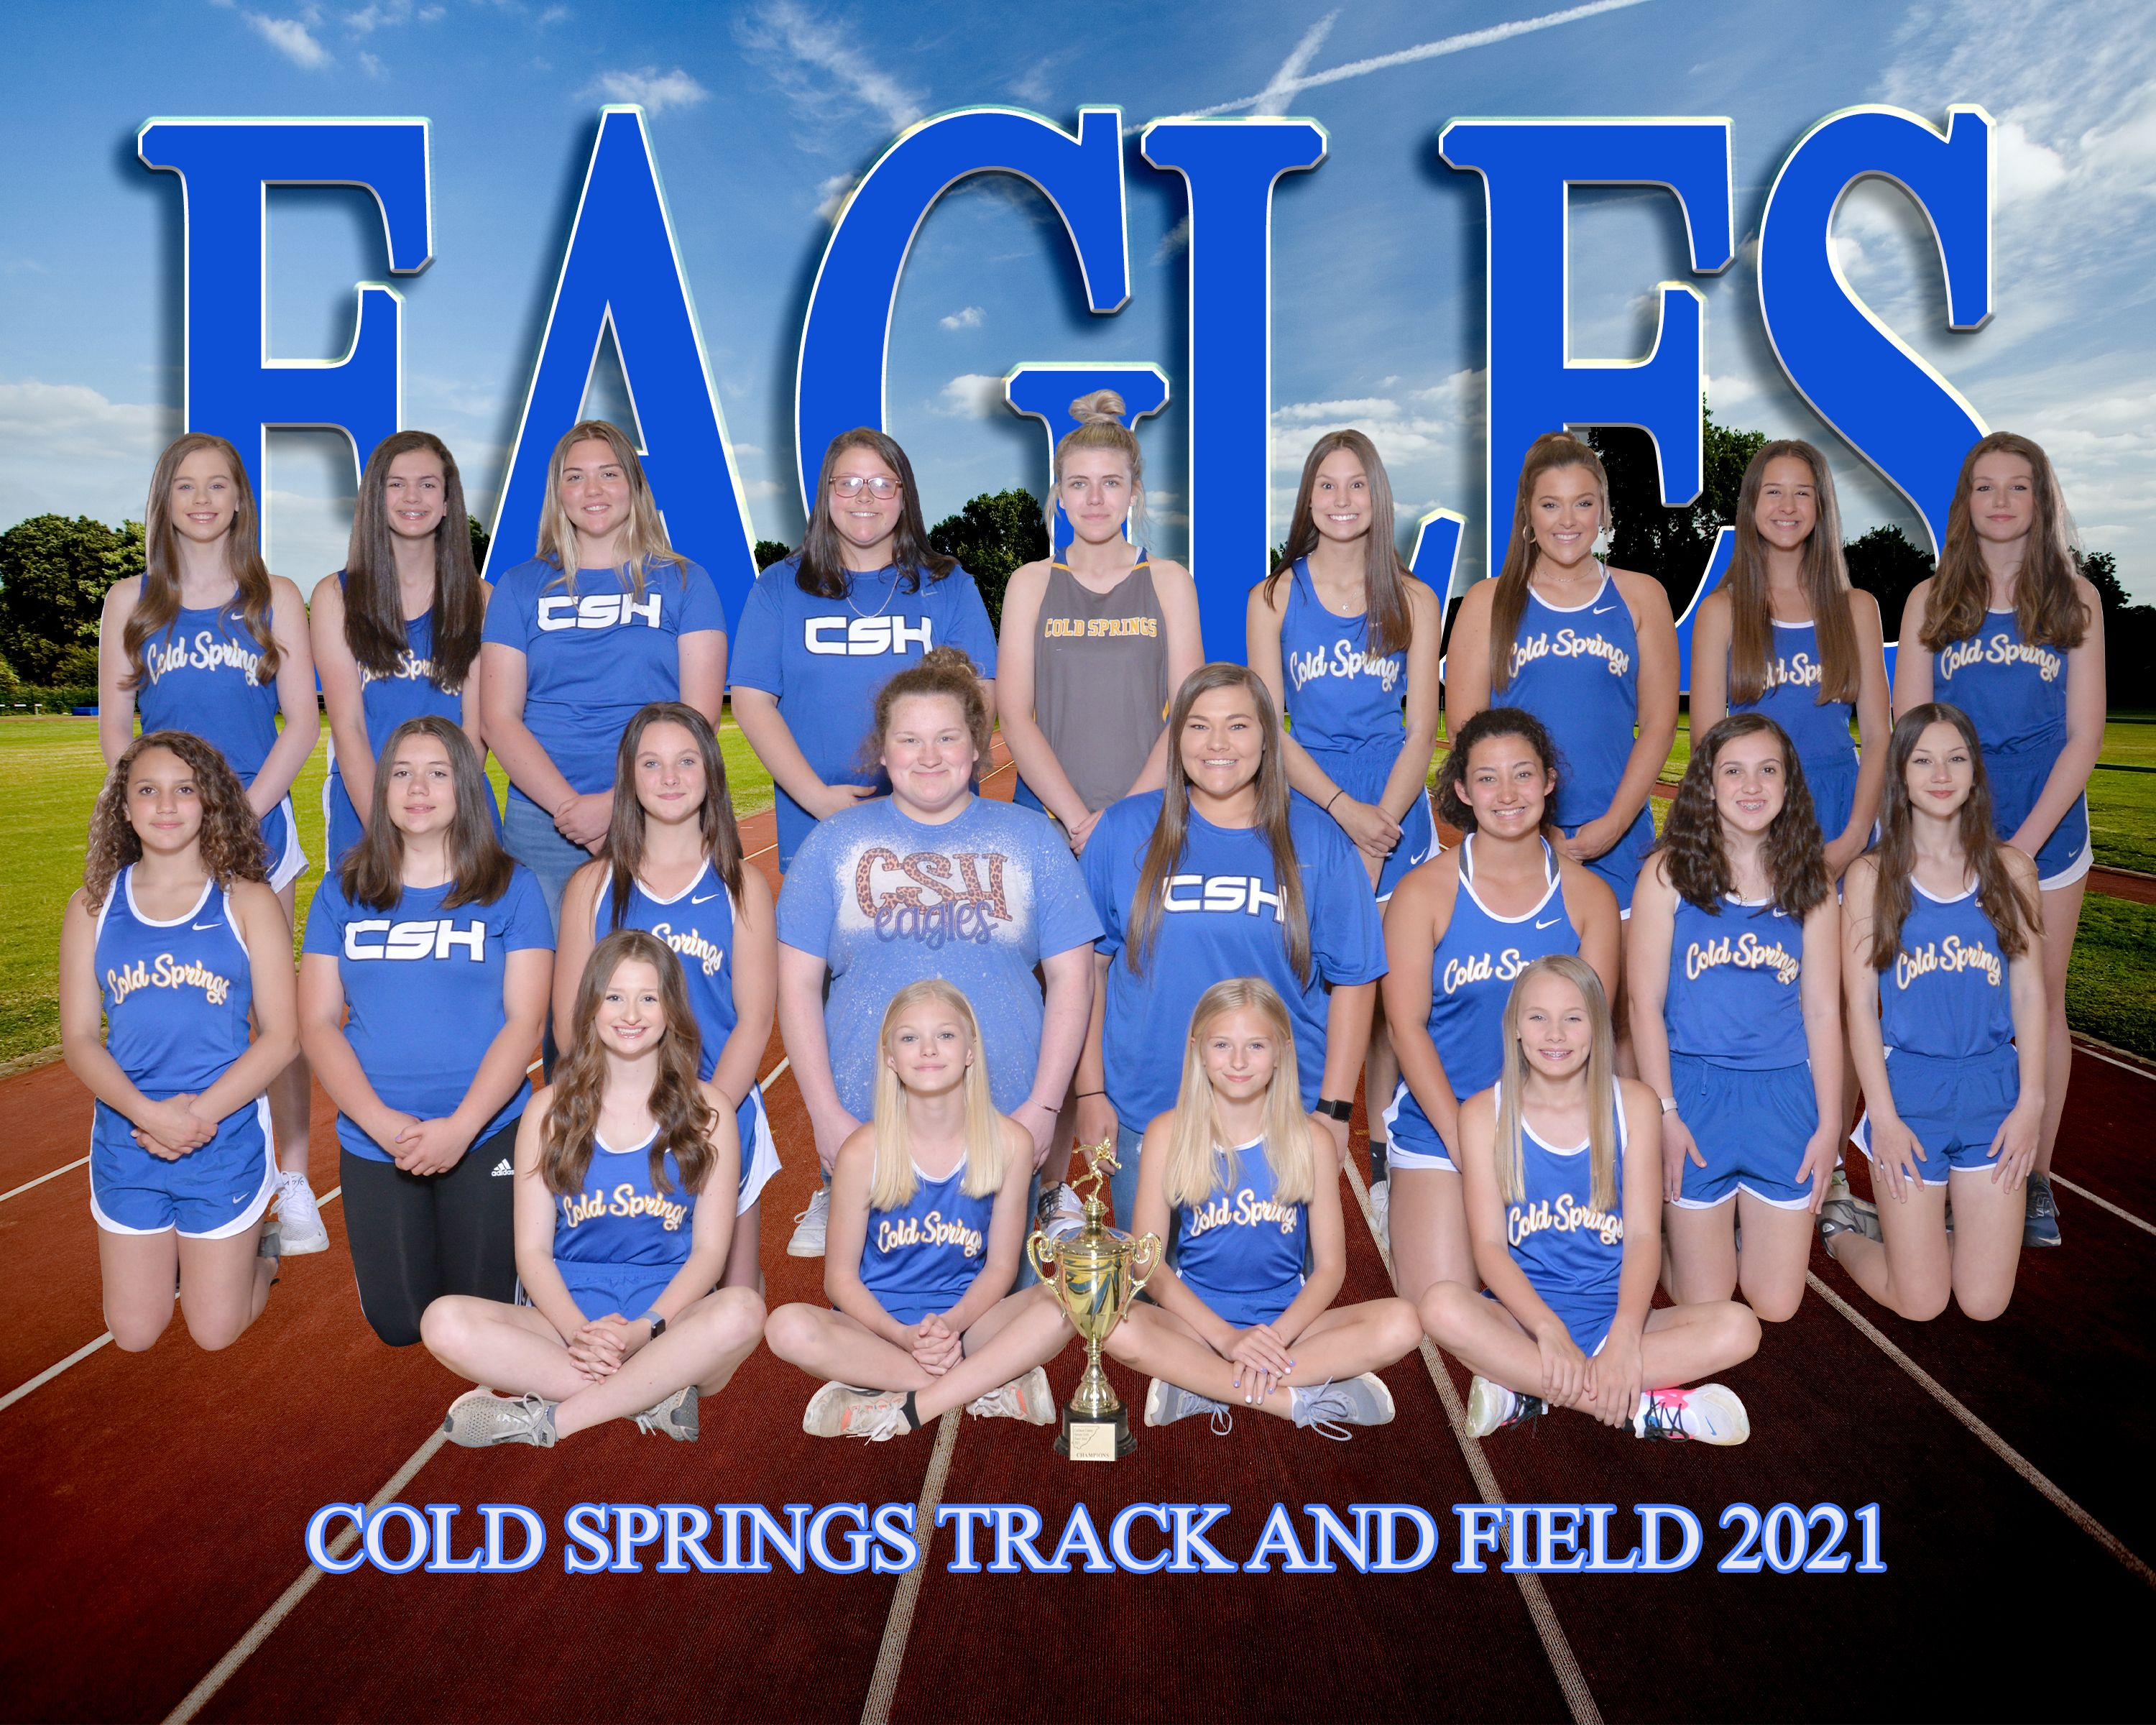 2021 Cold Springs Girls Track & Field Team